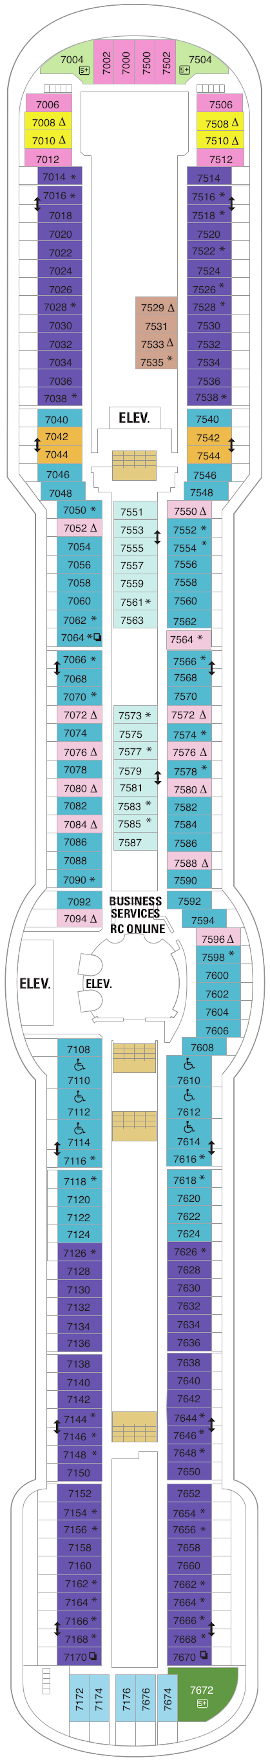 Serenade Of The Seas Deck Seven Deck Plan